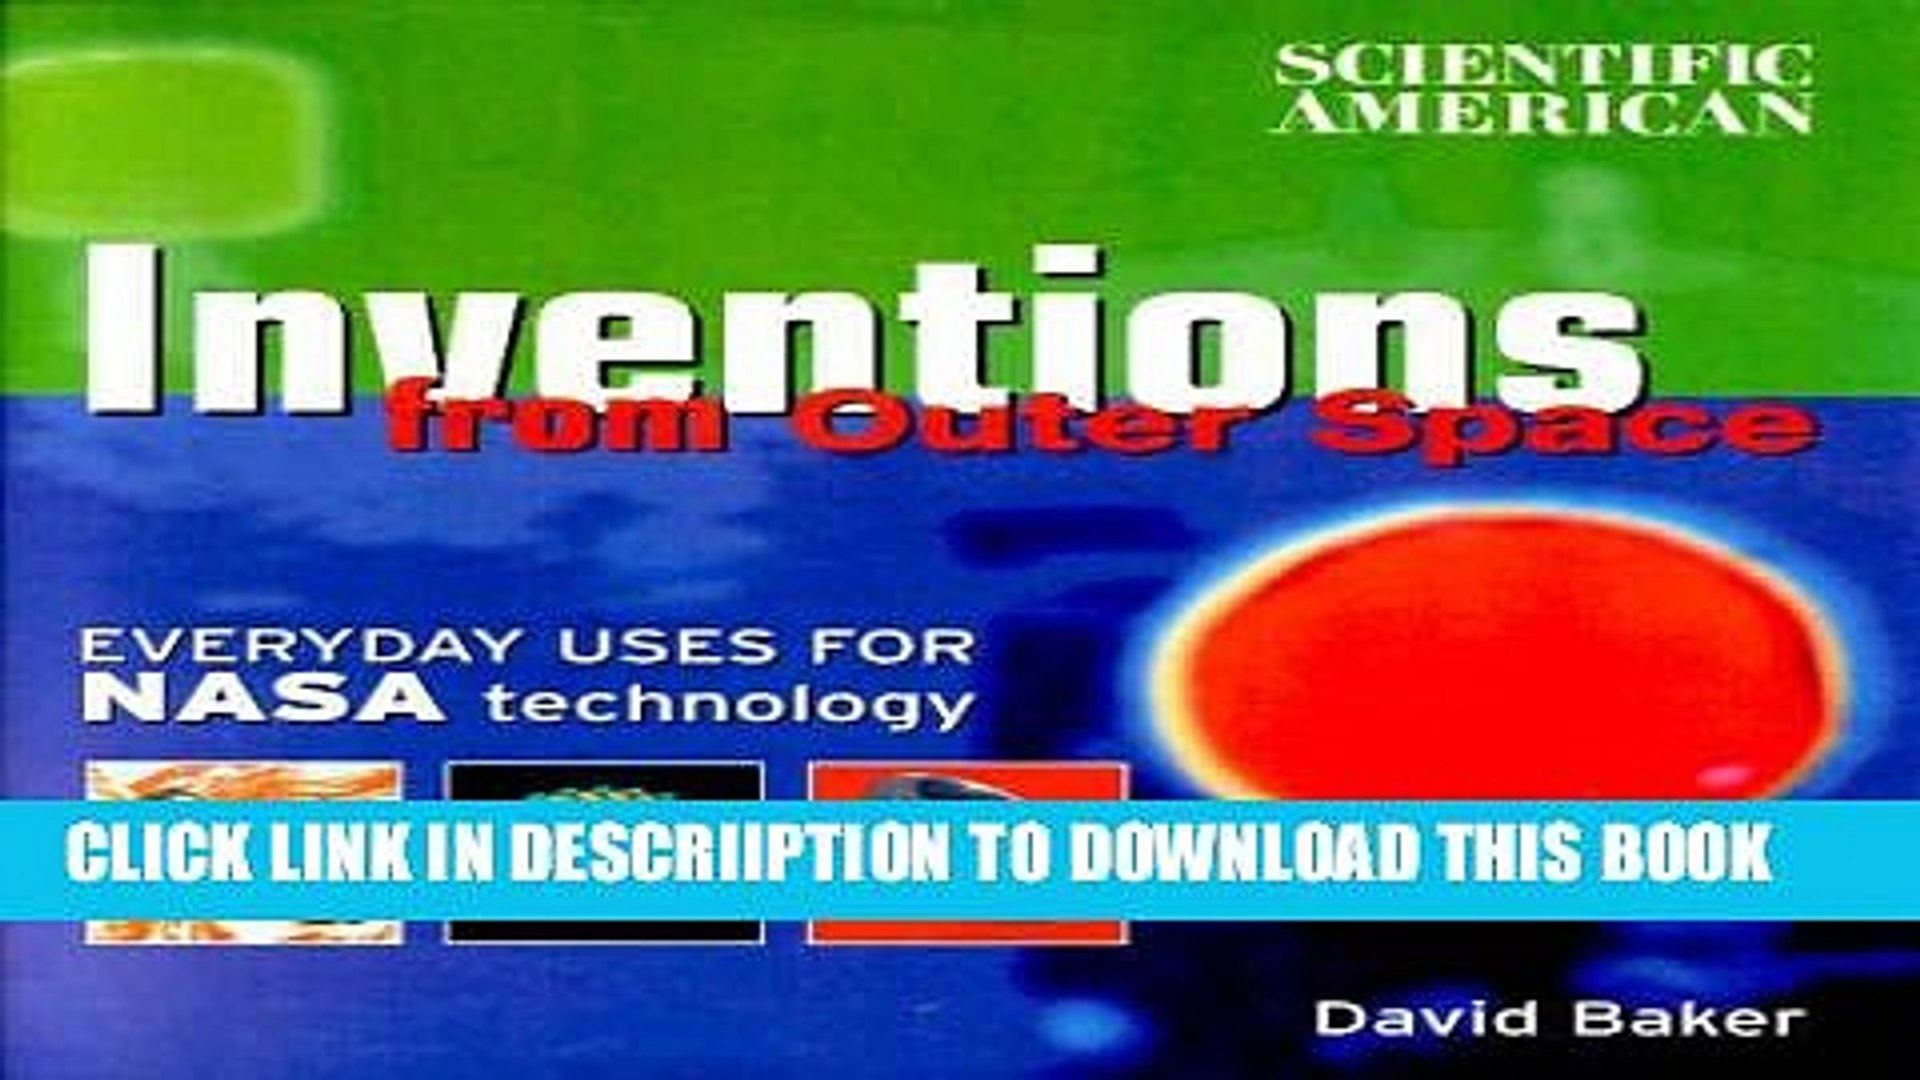 [PDF] Scientific American: Inventions from Outer Space: Everyday Uses for NASA Technology Popular